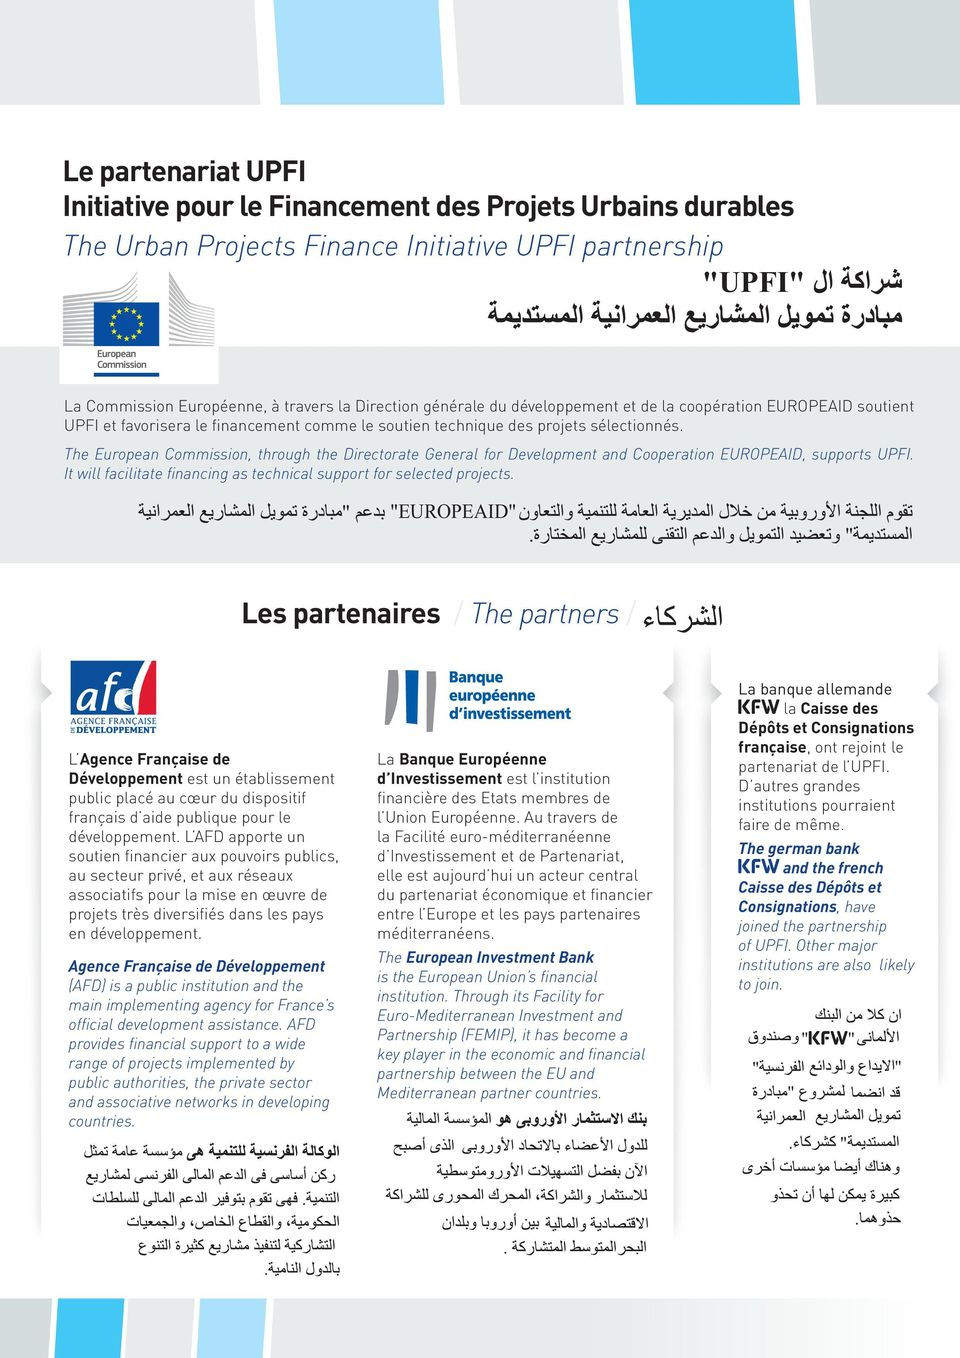 for Development and Cooperation EUROPEAID, supports UPFI It will facilitate financing as technical support for selected projects EUROPEAID Les partenaires / The partners / L Agence Française de